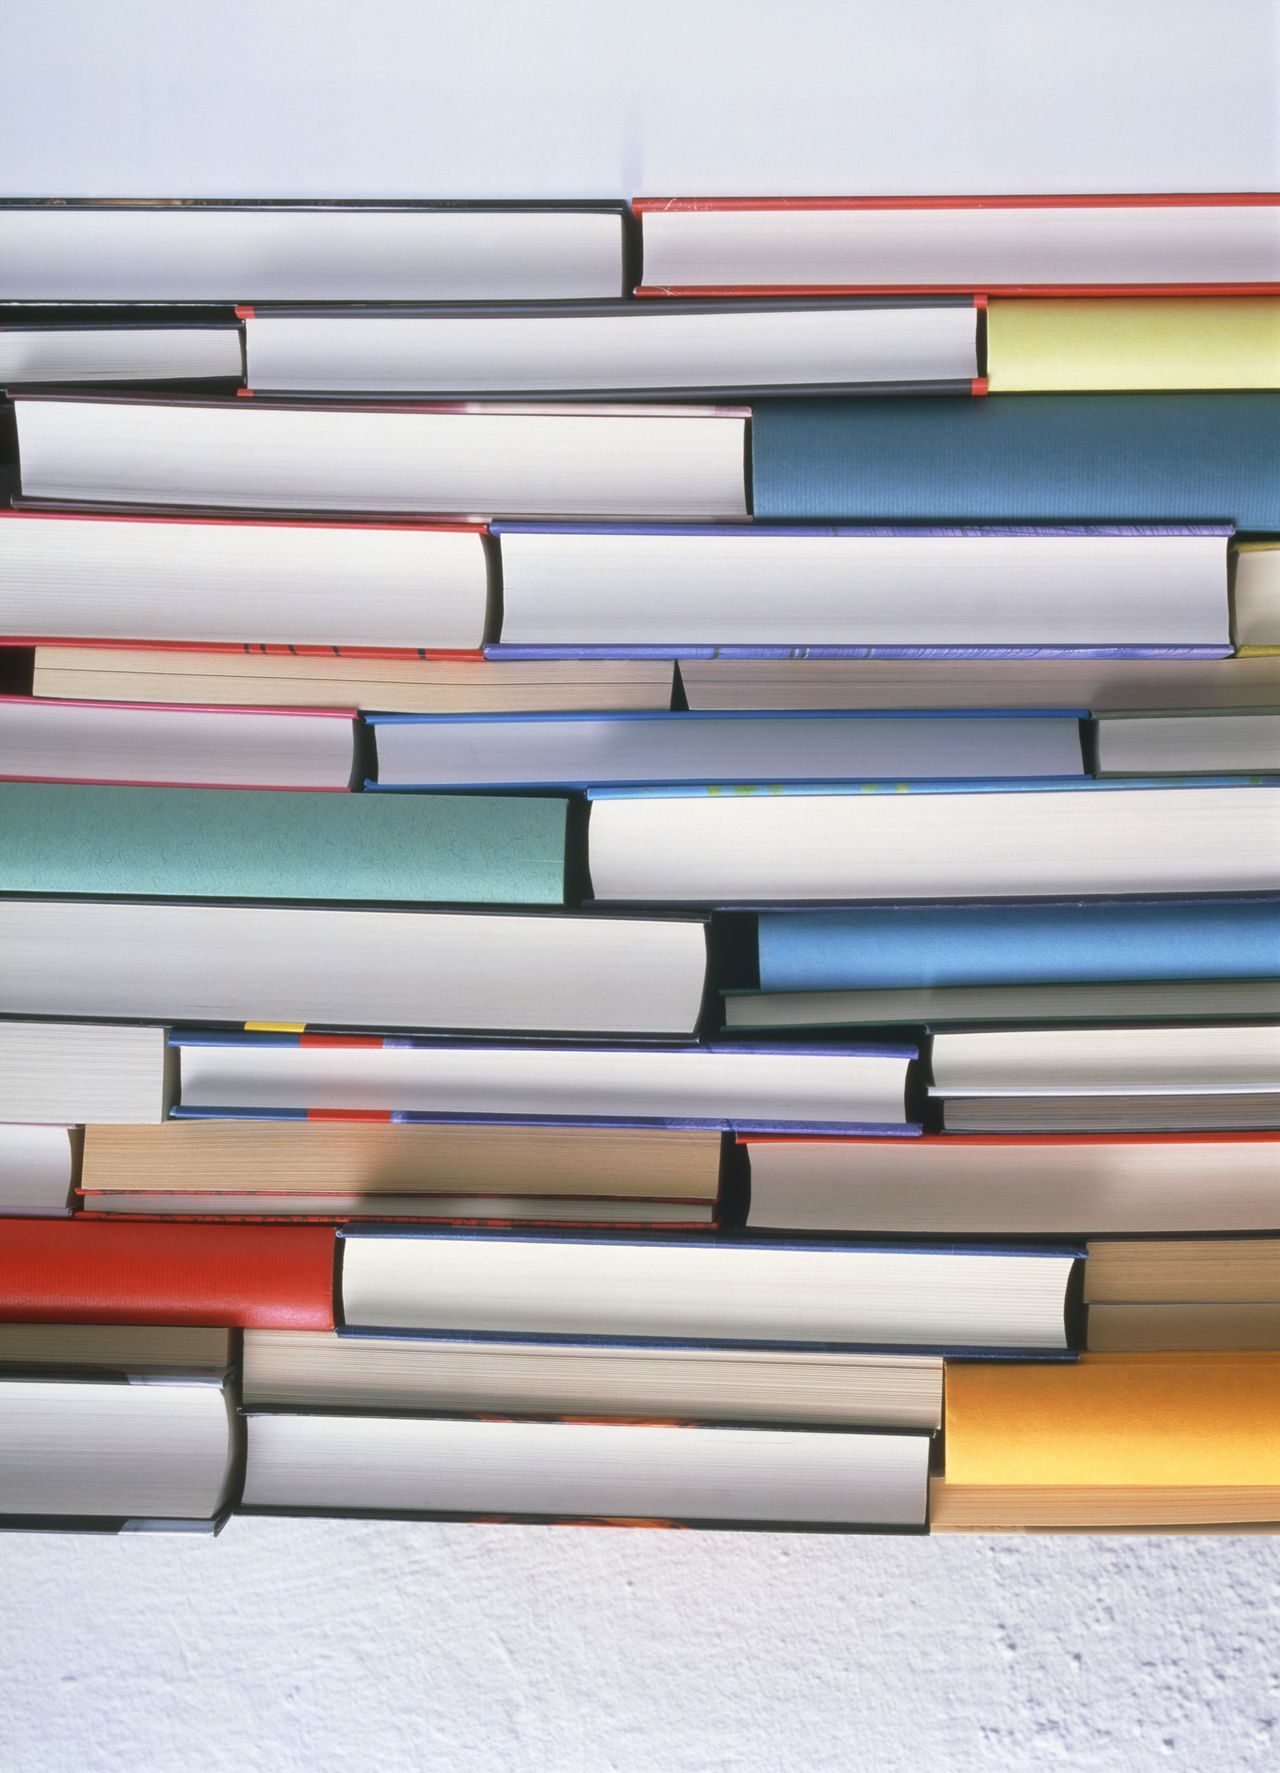 Pile of books --- Image by © Ruediger Knobloch/A.B./Corbis